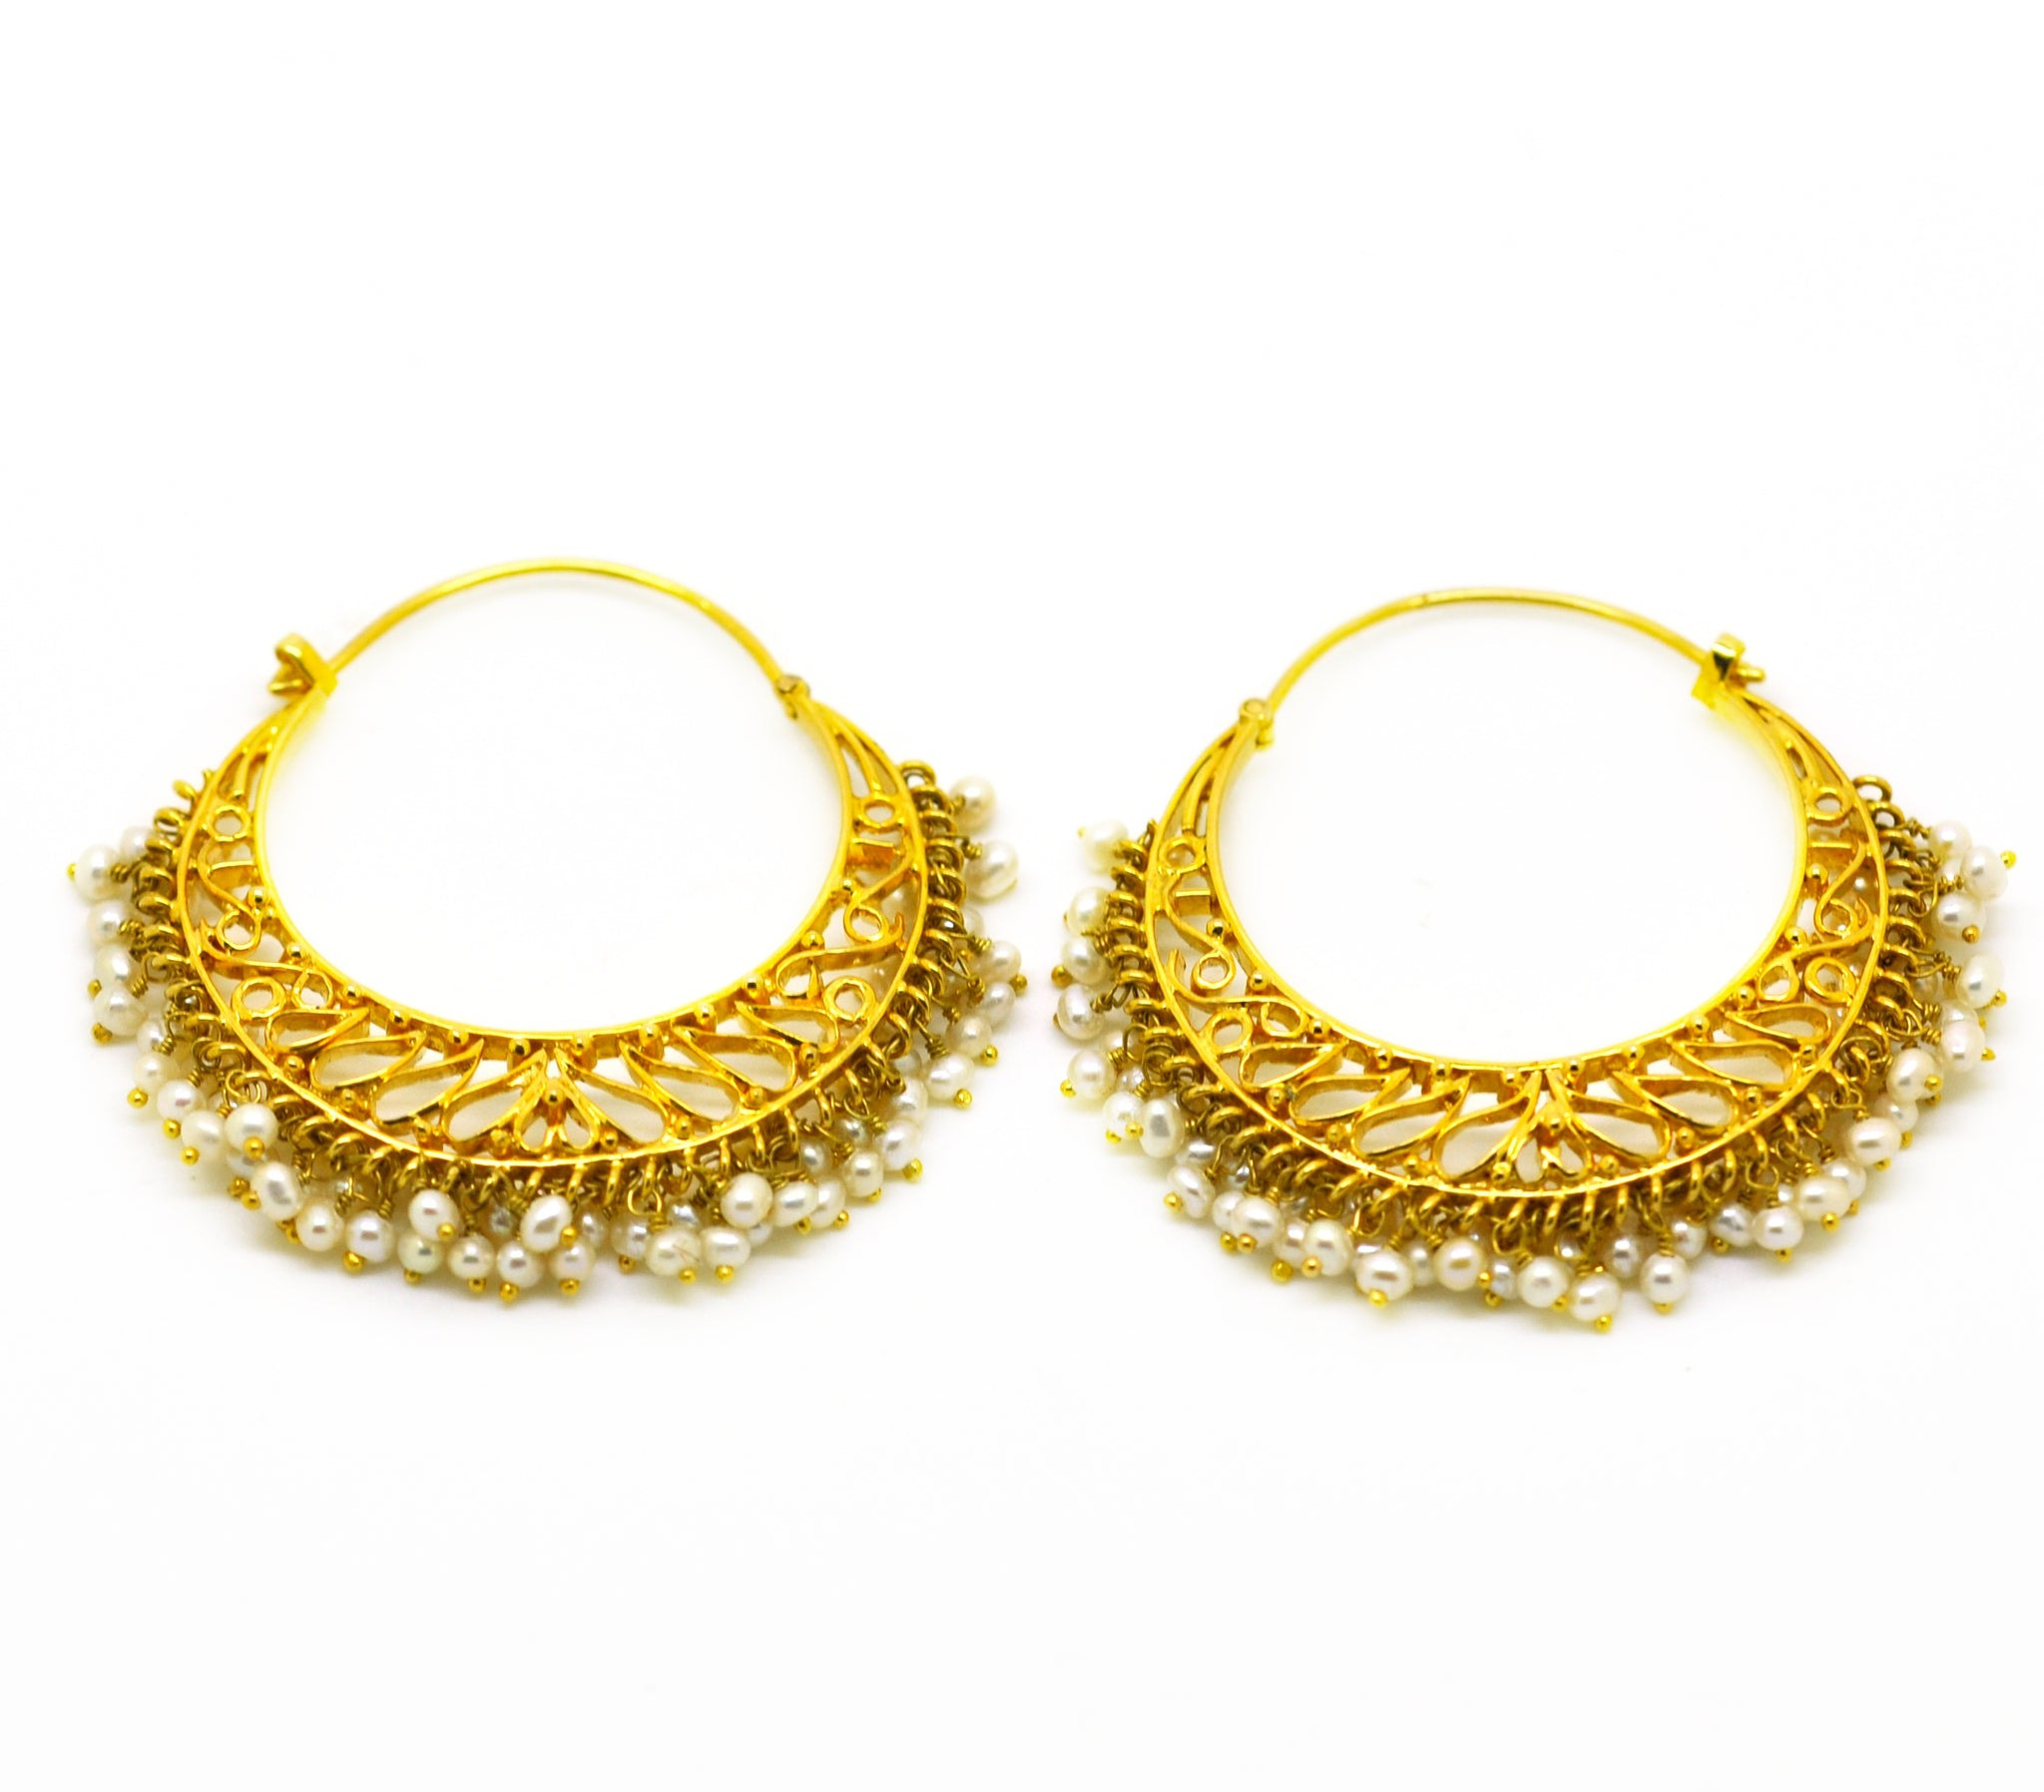 NEW Gold Filigree Hoops